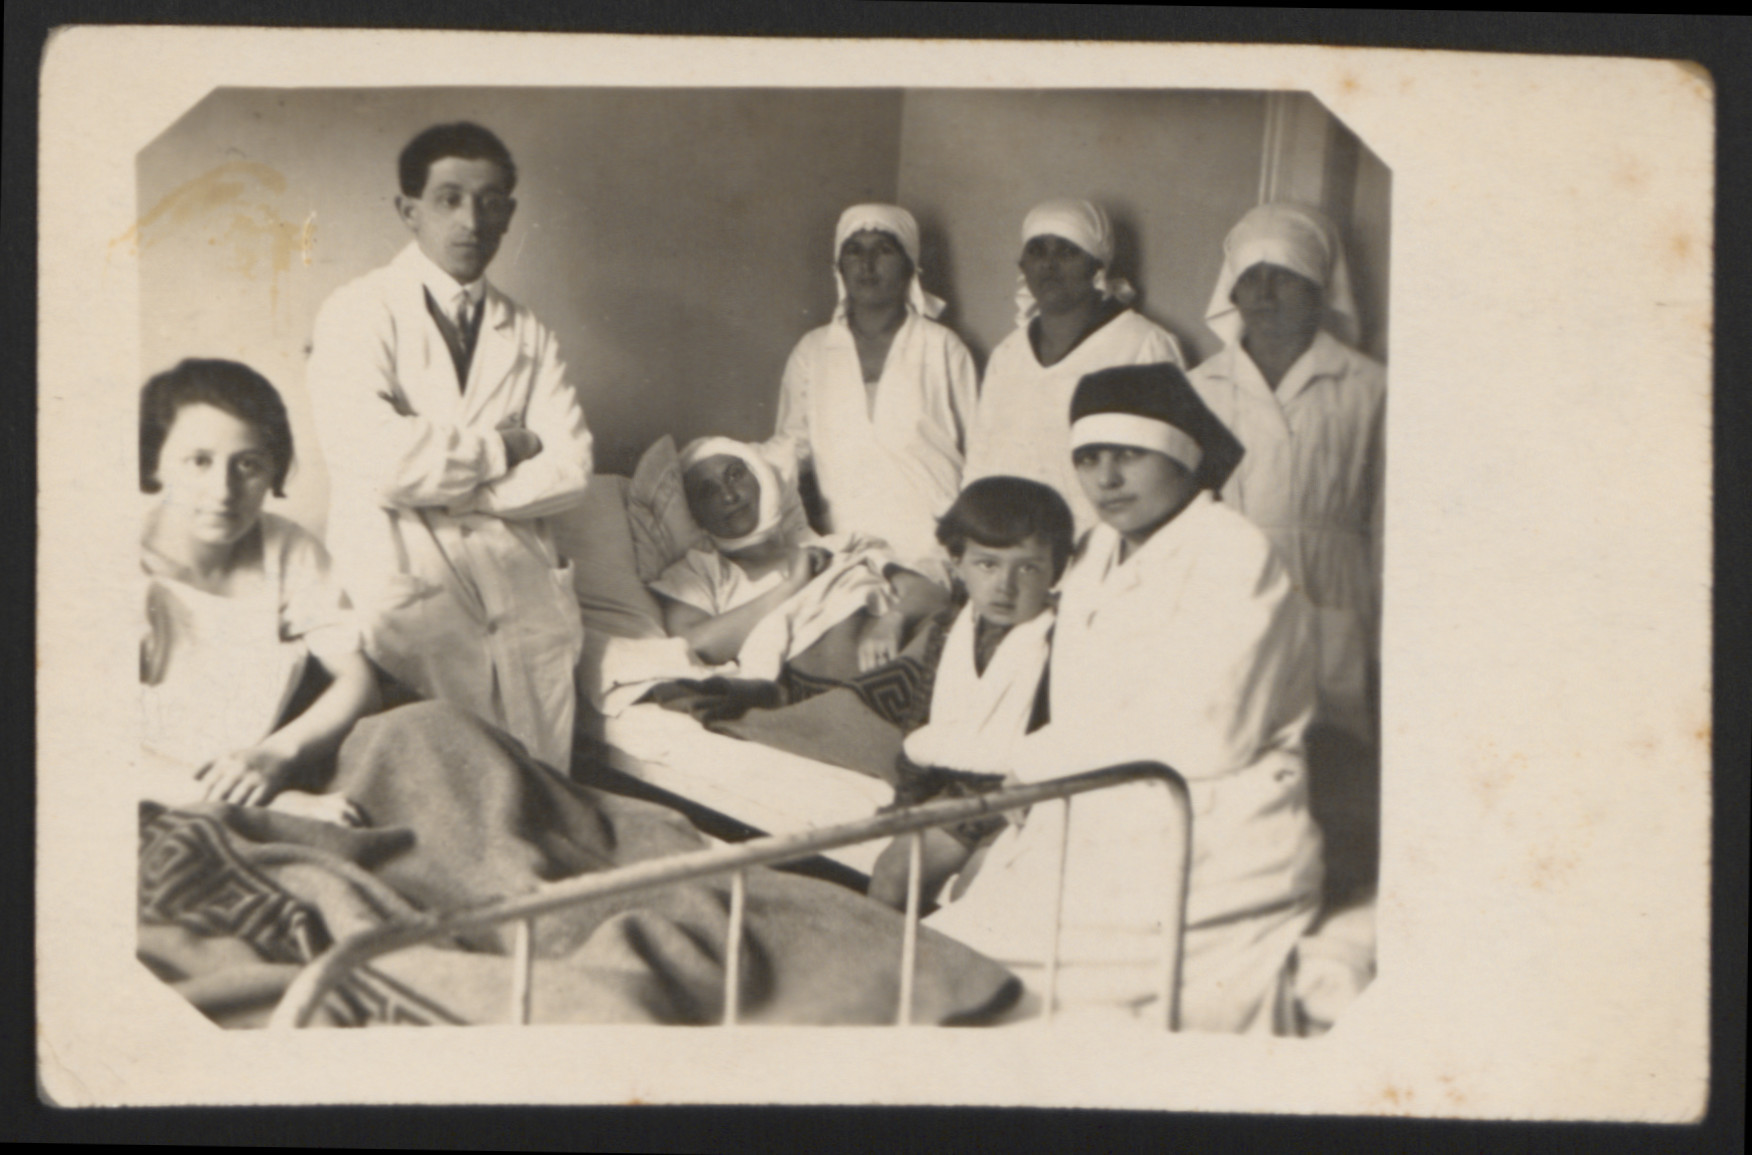 Dr. Ladislav Merei and a group of nurses gather around a patient in prewar Czechoslovakia (either Prague or Bratislava).